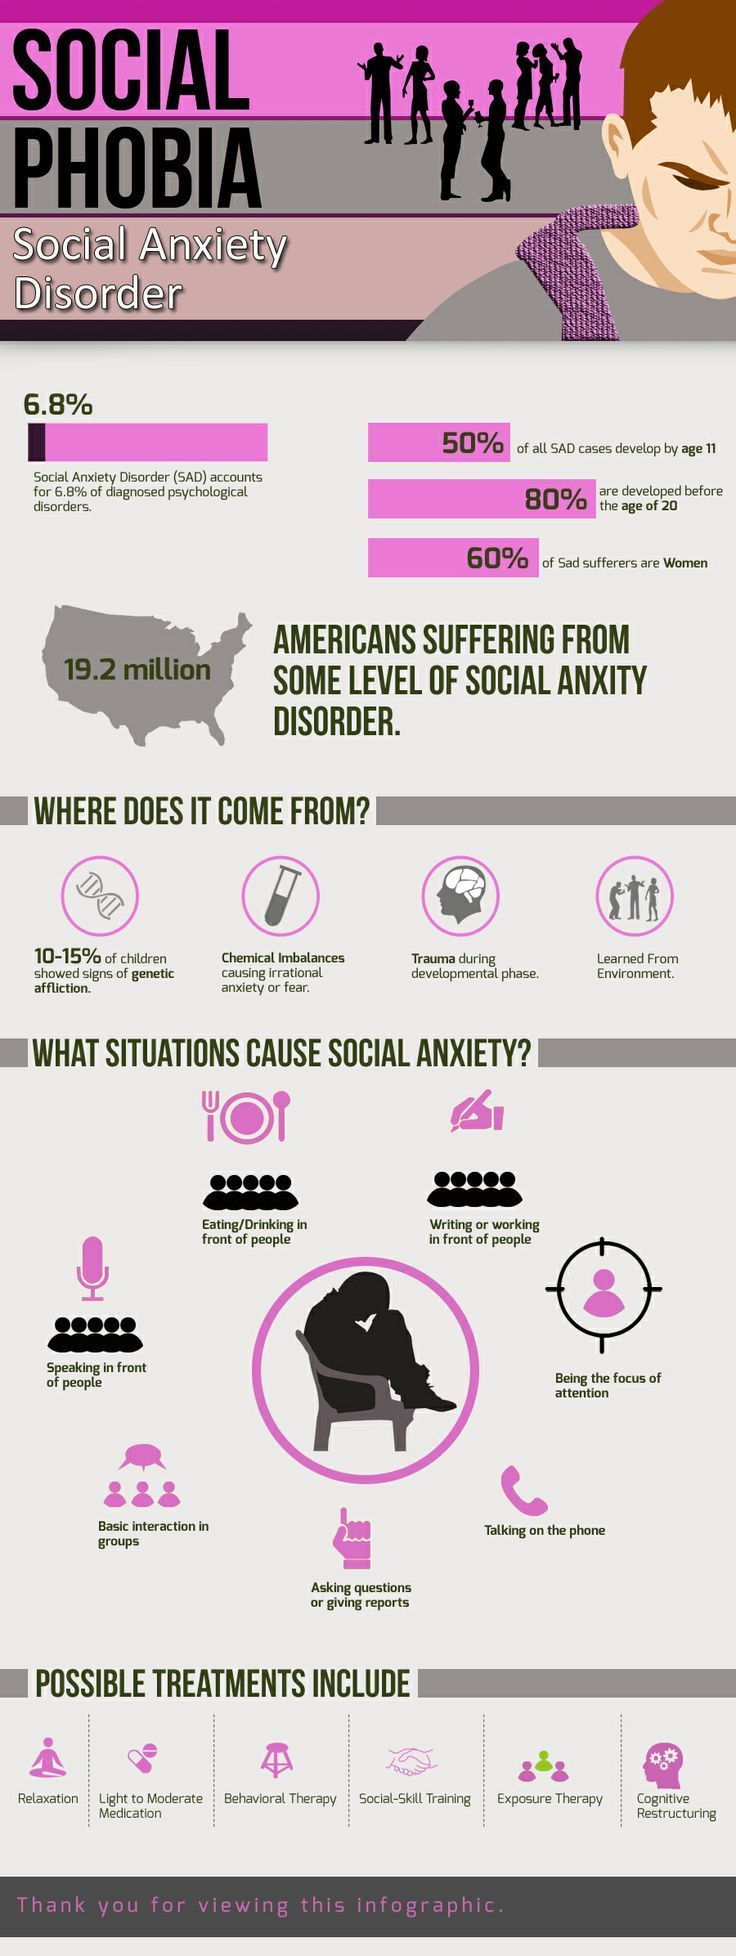 Social Phobia and Social Anxiety Disorder - Mental Illness - Mental Health http://www.eftvideotutorials.com/anxiety/?utm_content=buffercdfef&utm_medium=social&utm_source=pinterest.com&utm_campaign=buffer